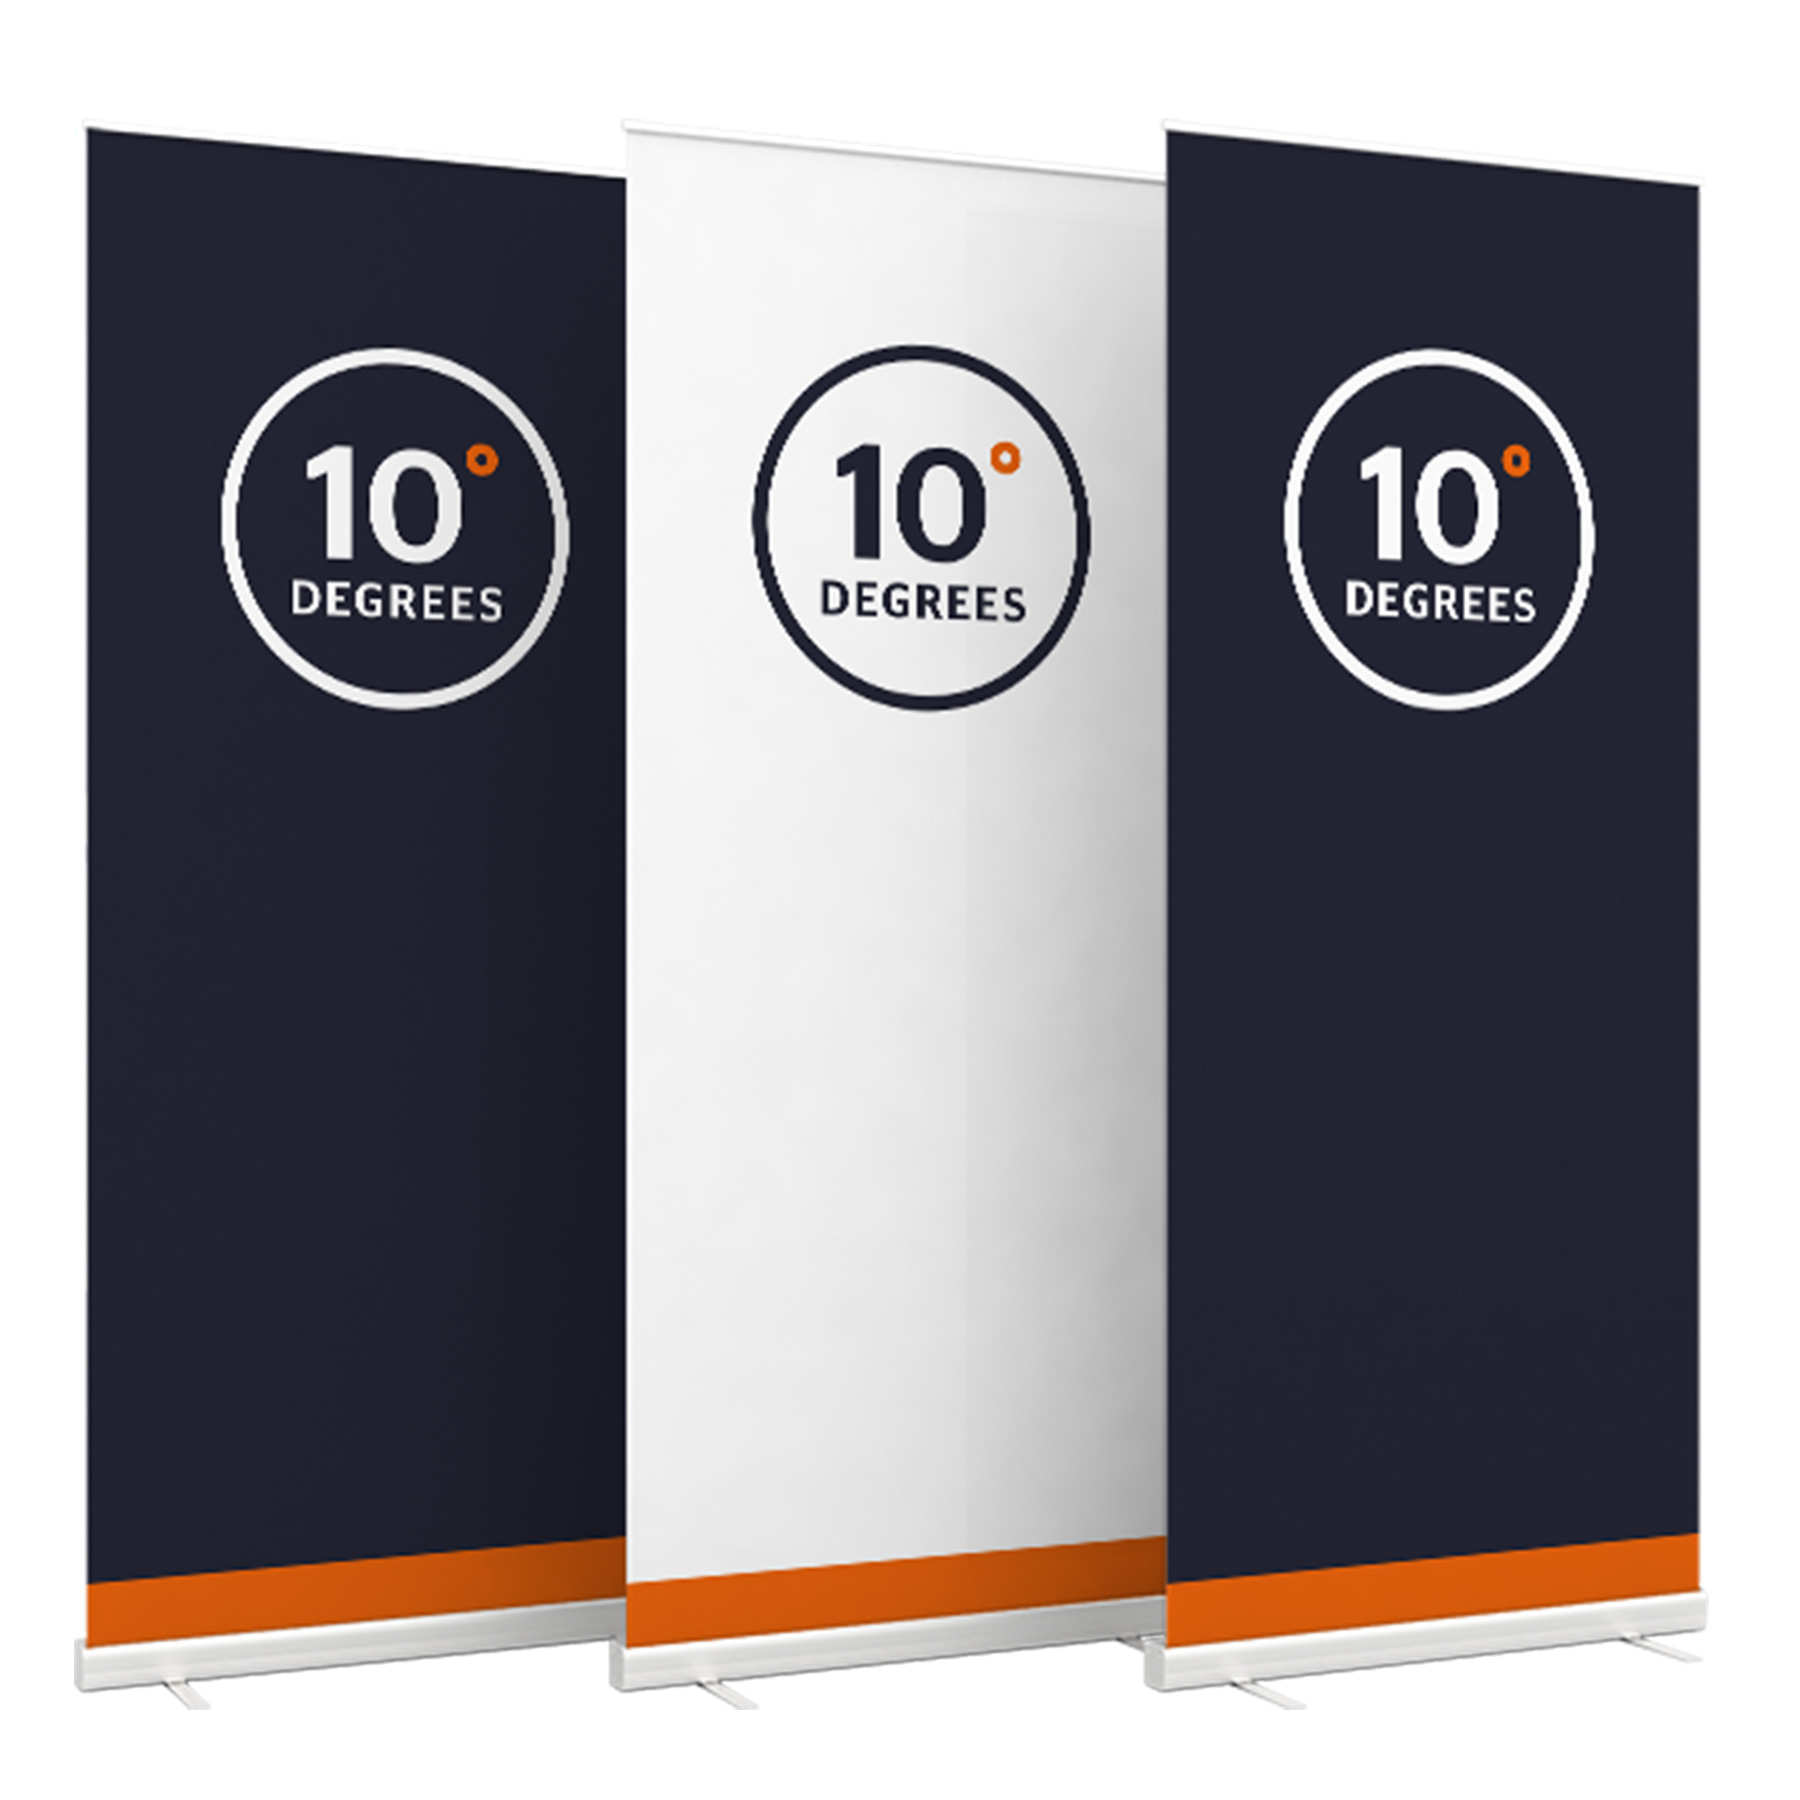 Roll-up banners 10 Degrees